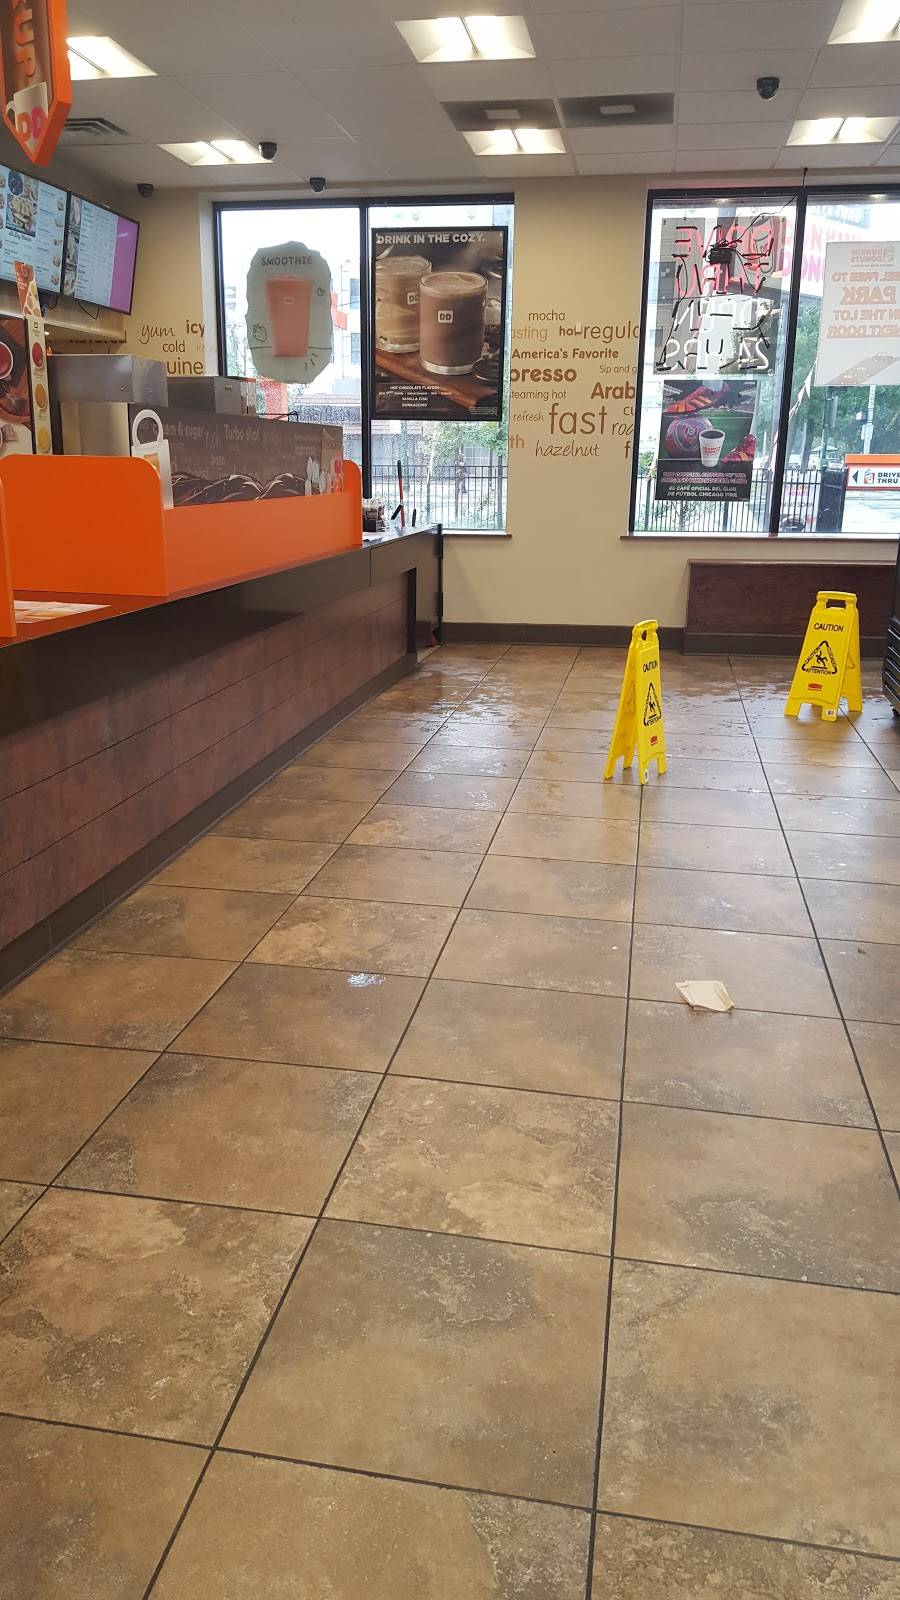 Dunkin Donuts | cafe | 5454 S State St, Chicago, IL 60609, USA | 7735586695 OR +1 773-558-6695